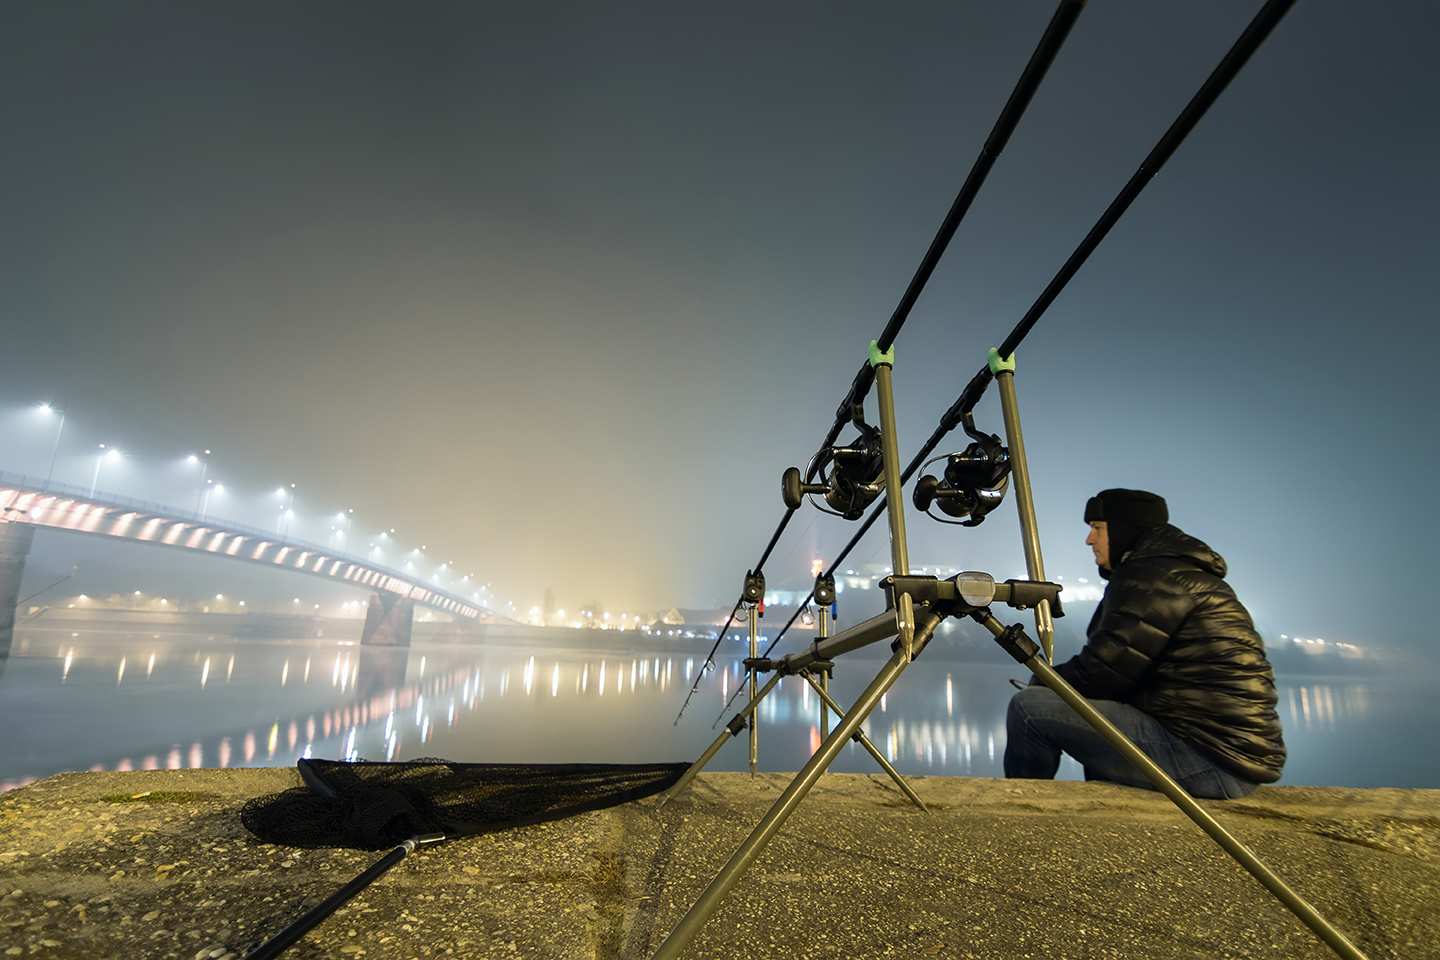 An urban angler fishing in London at night, with two fishing rods set up in the foreground and the lights of a bridge in the distance